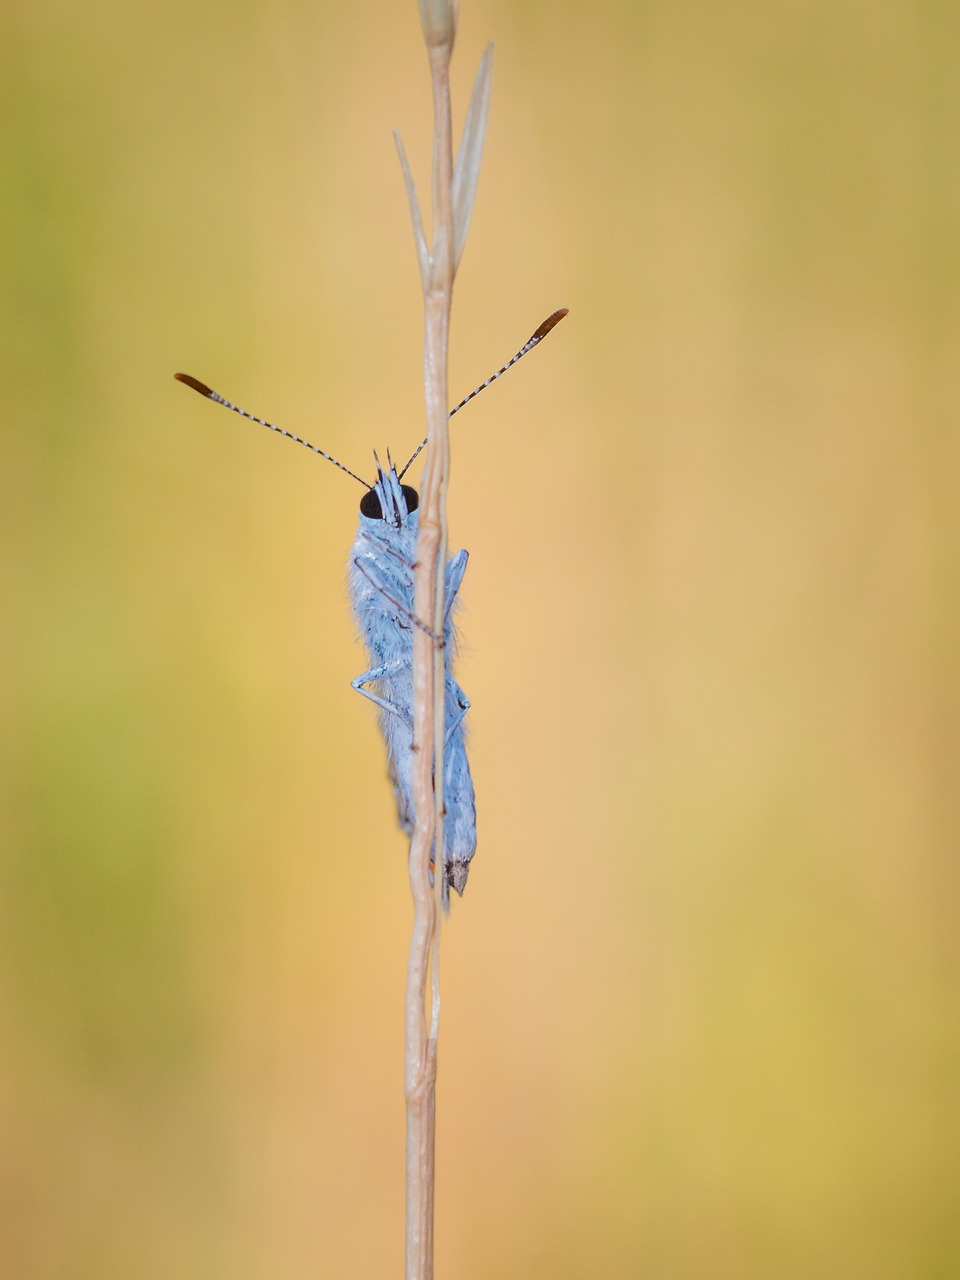 FREE insect Stock Photos from PikWizard